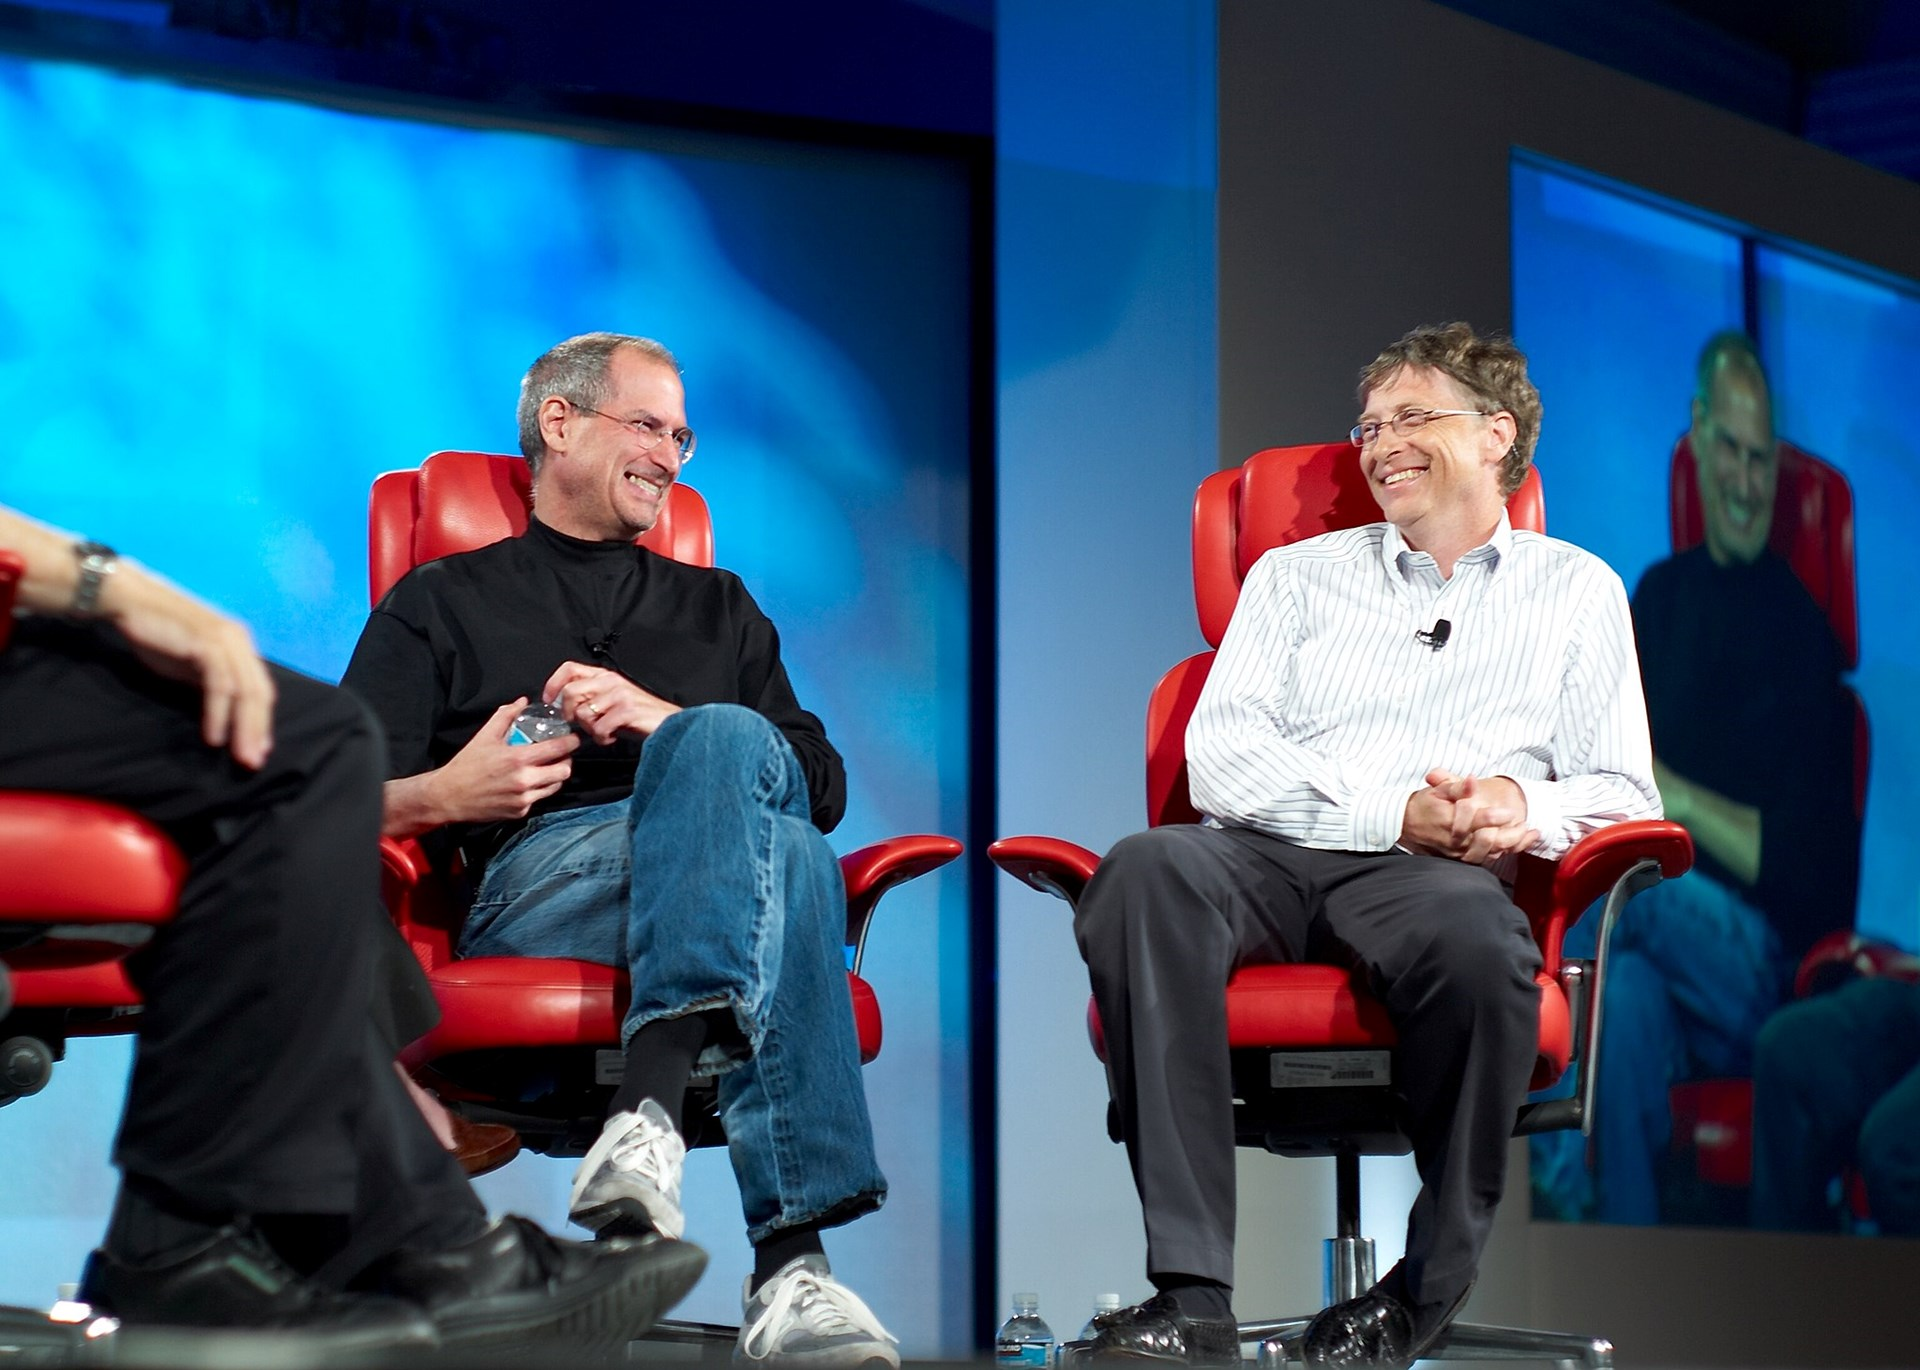 Why Steve Jobs, not Bill Gates, Was the True Education